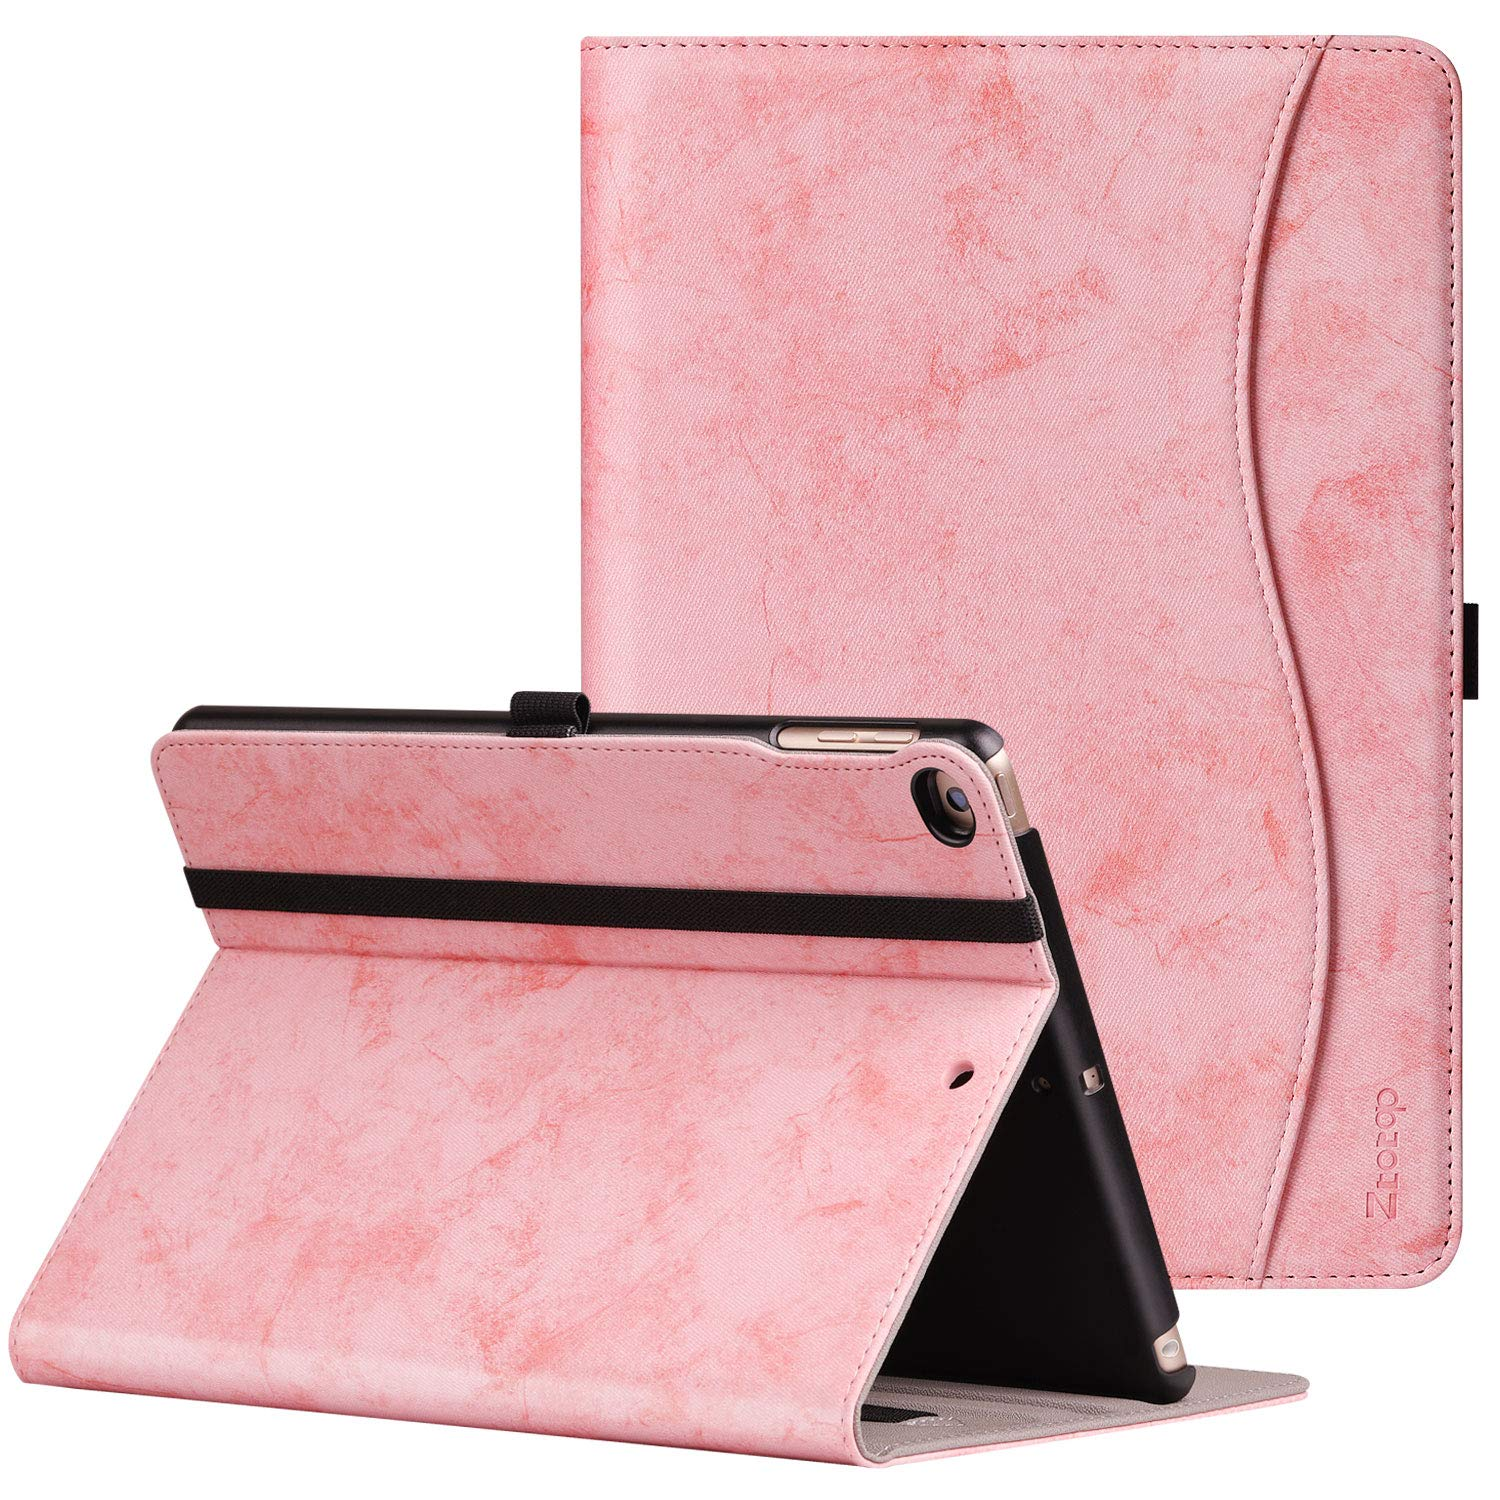 Ztotop Case for New IPad 9.7 Inch 2018/2017,Premium PU Leather Business Slim Folding Stand Folio Cover with Auto Wake/Sleep,Pencil Holder and Multiple Viewing Angles,Mottled Pink